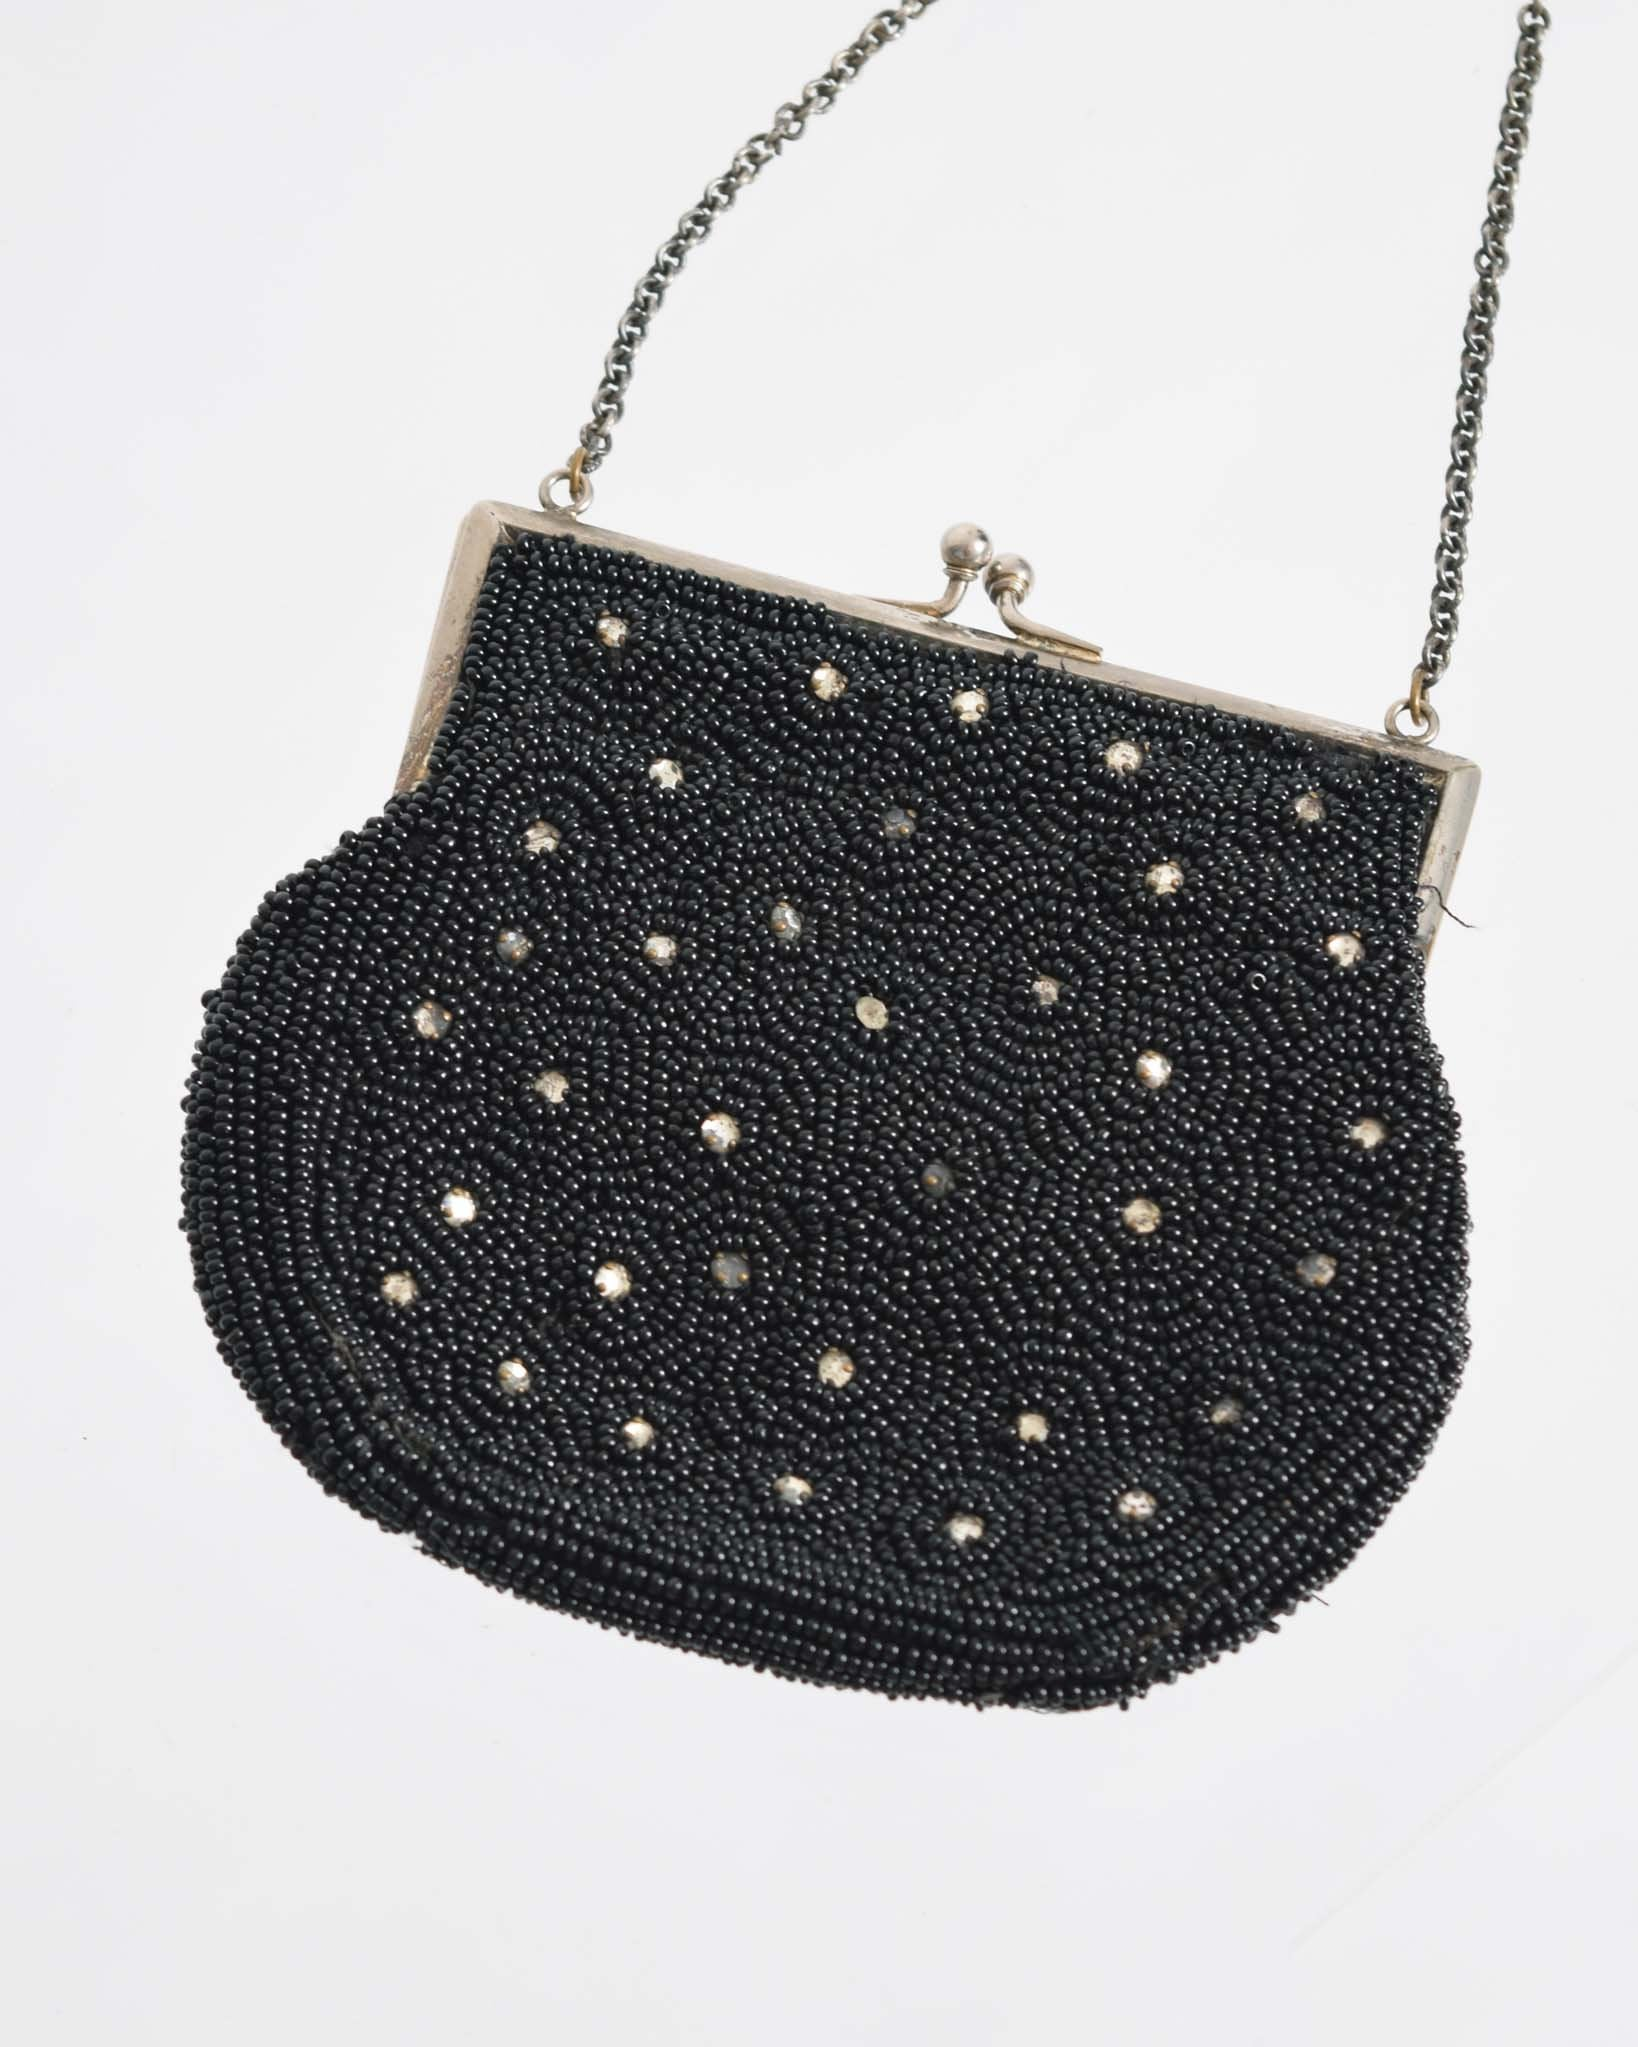 Vintage 1930s Beaded Evening Purse